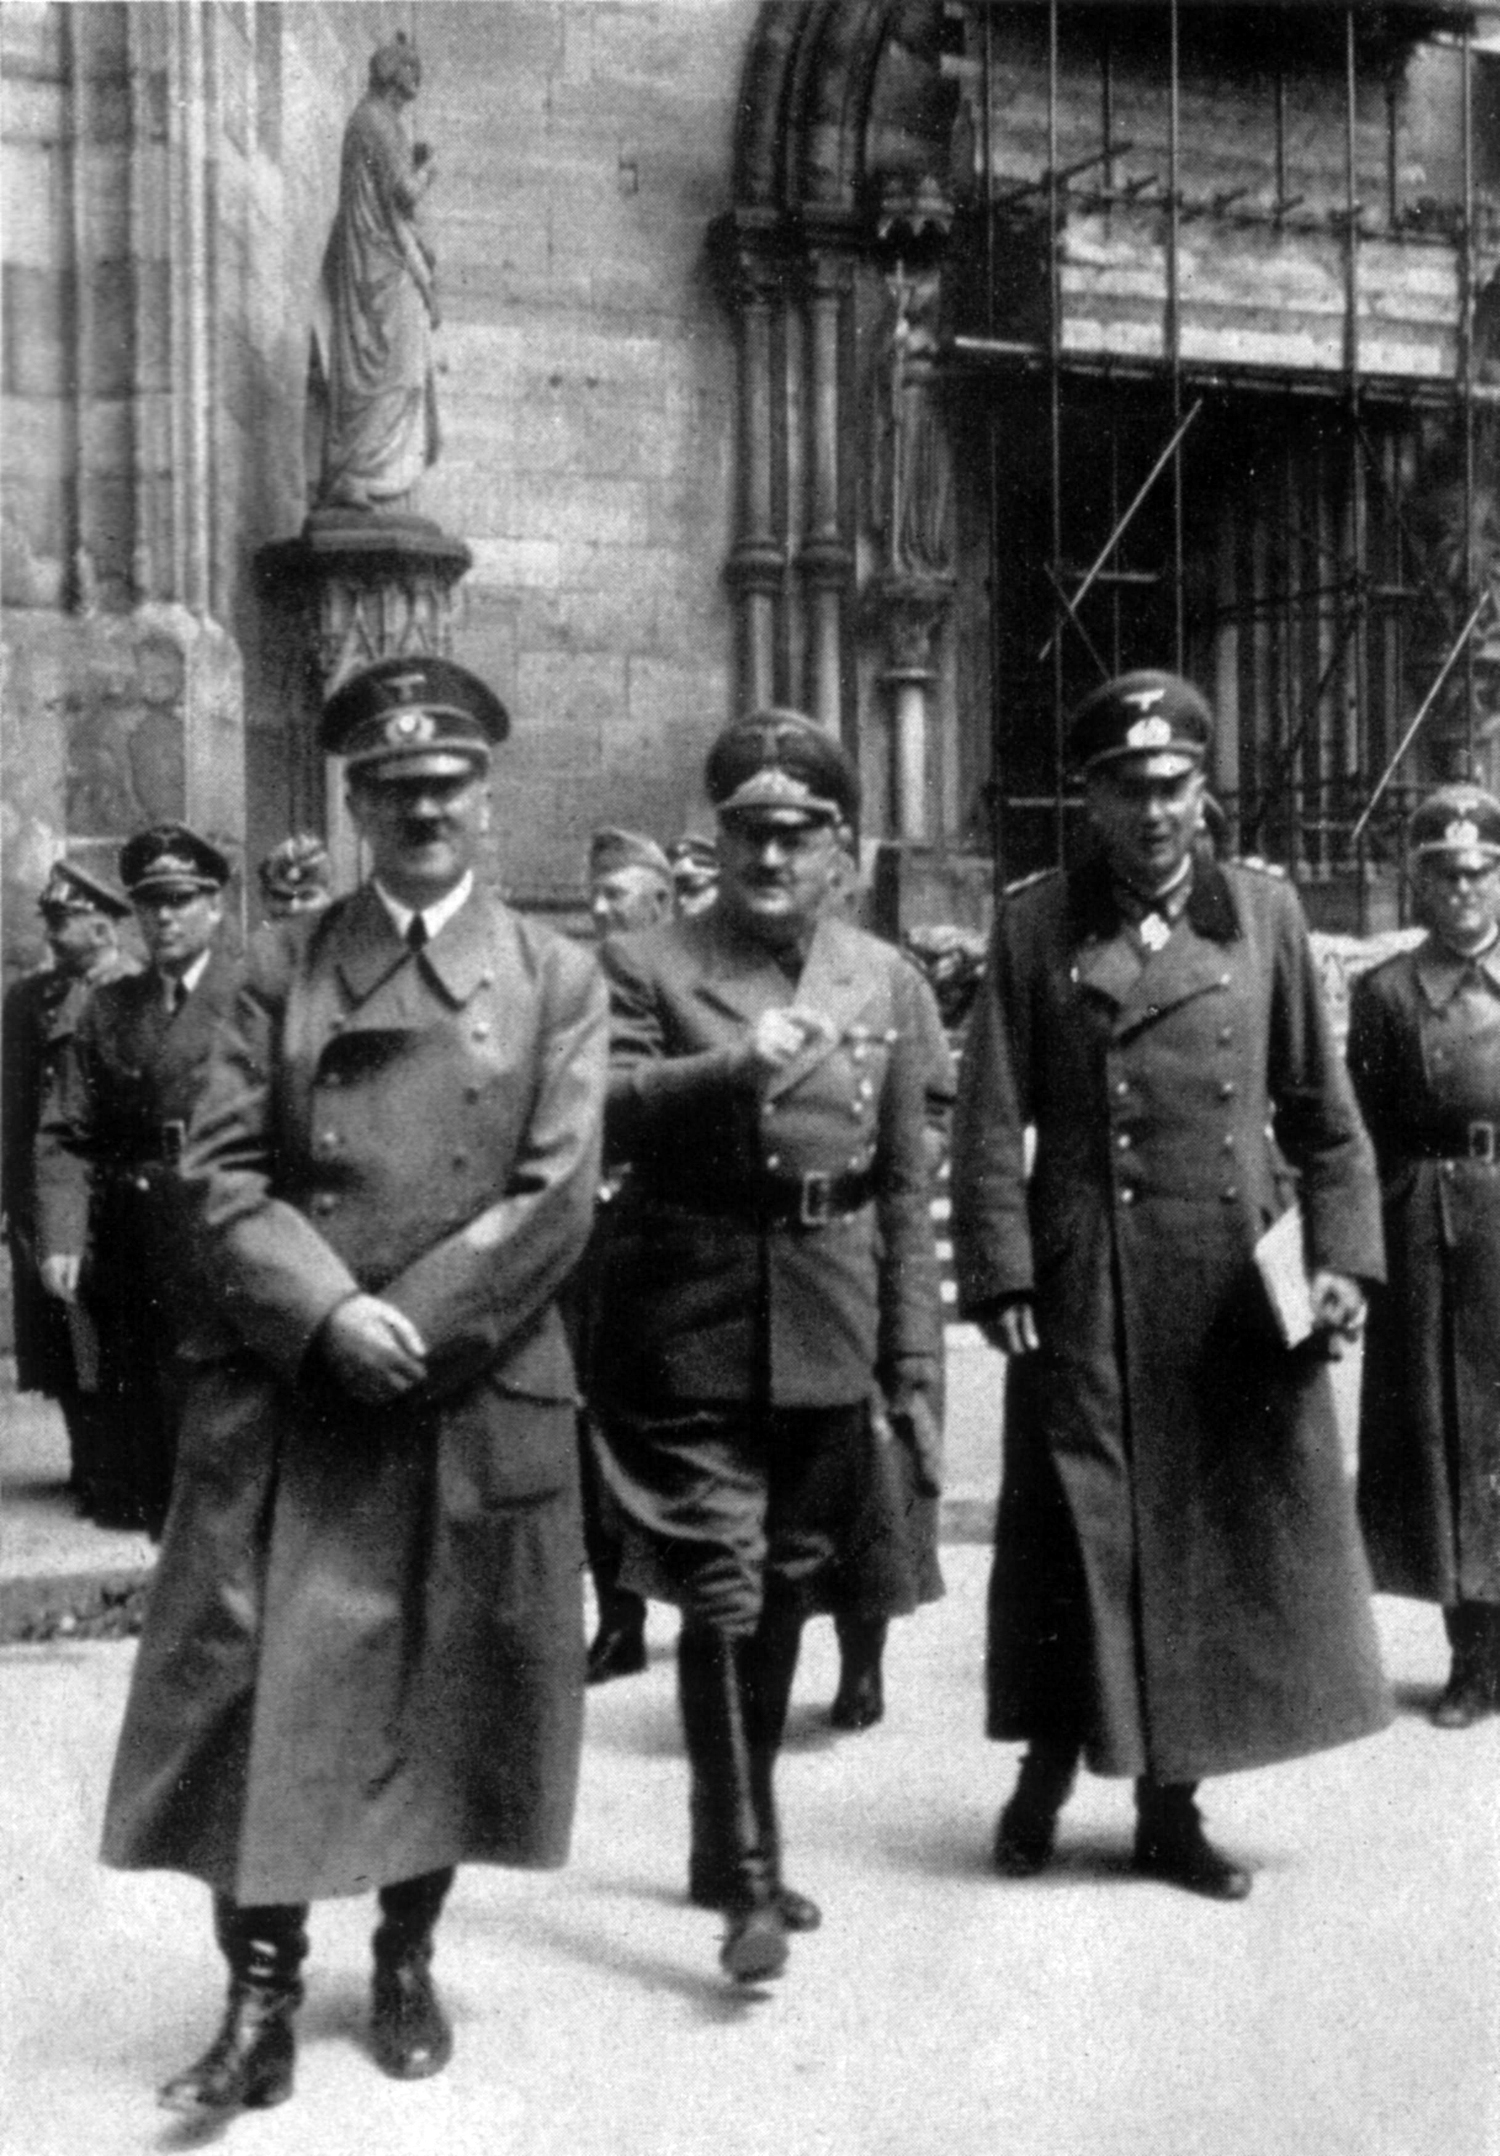 Adolf Hitler visits the Strasbourg cathedral in France